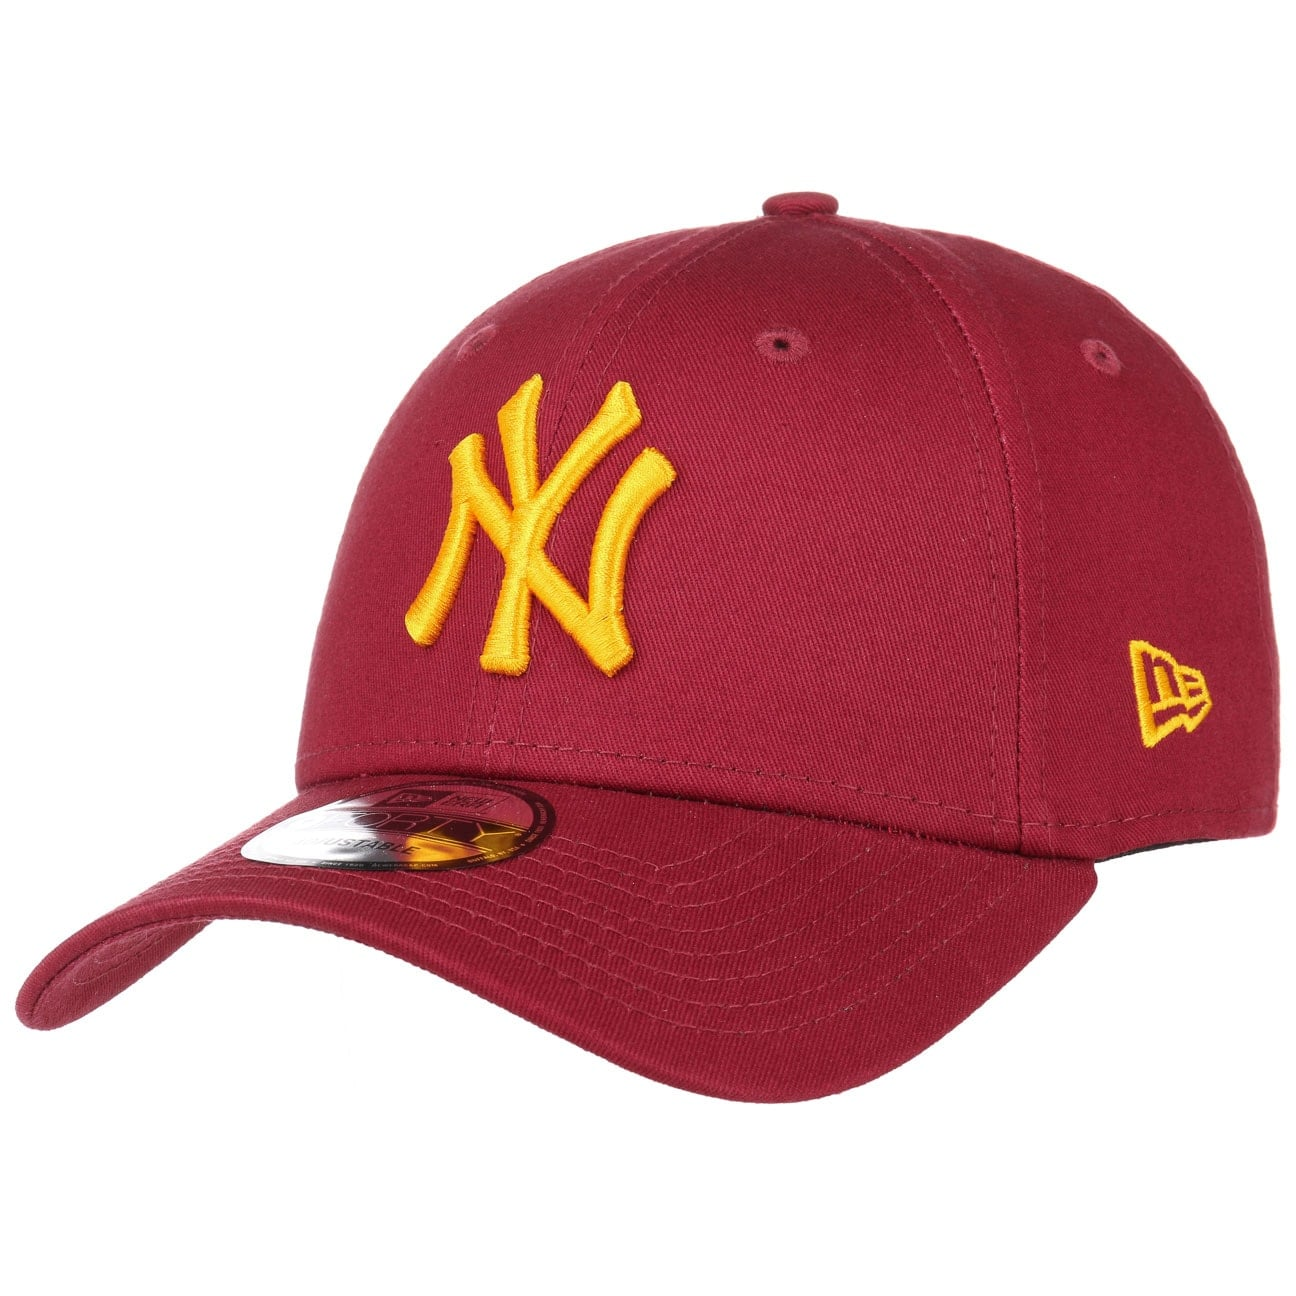 9forty-yankees-cap-by-new-era-basecap